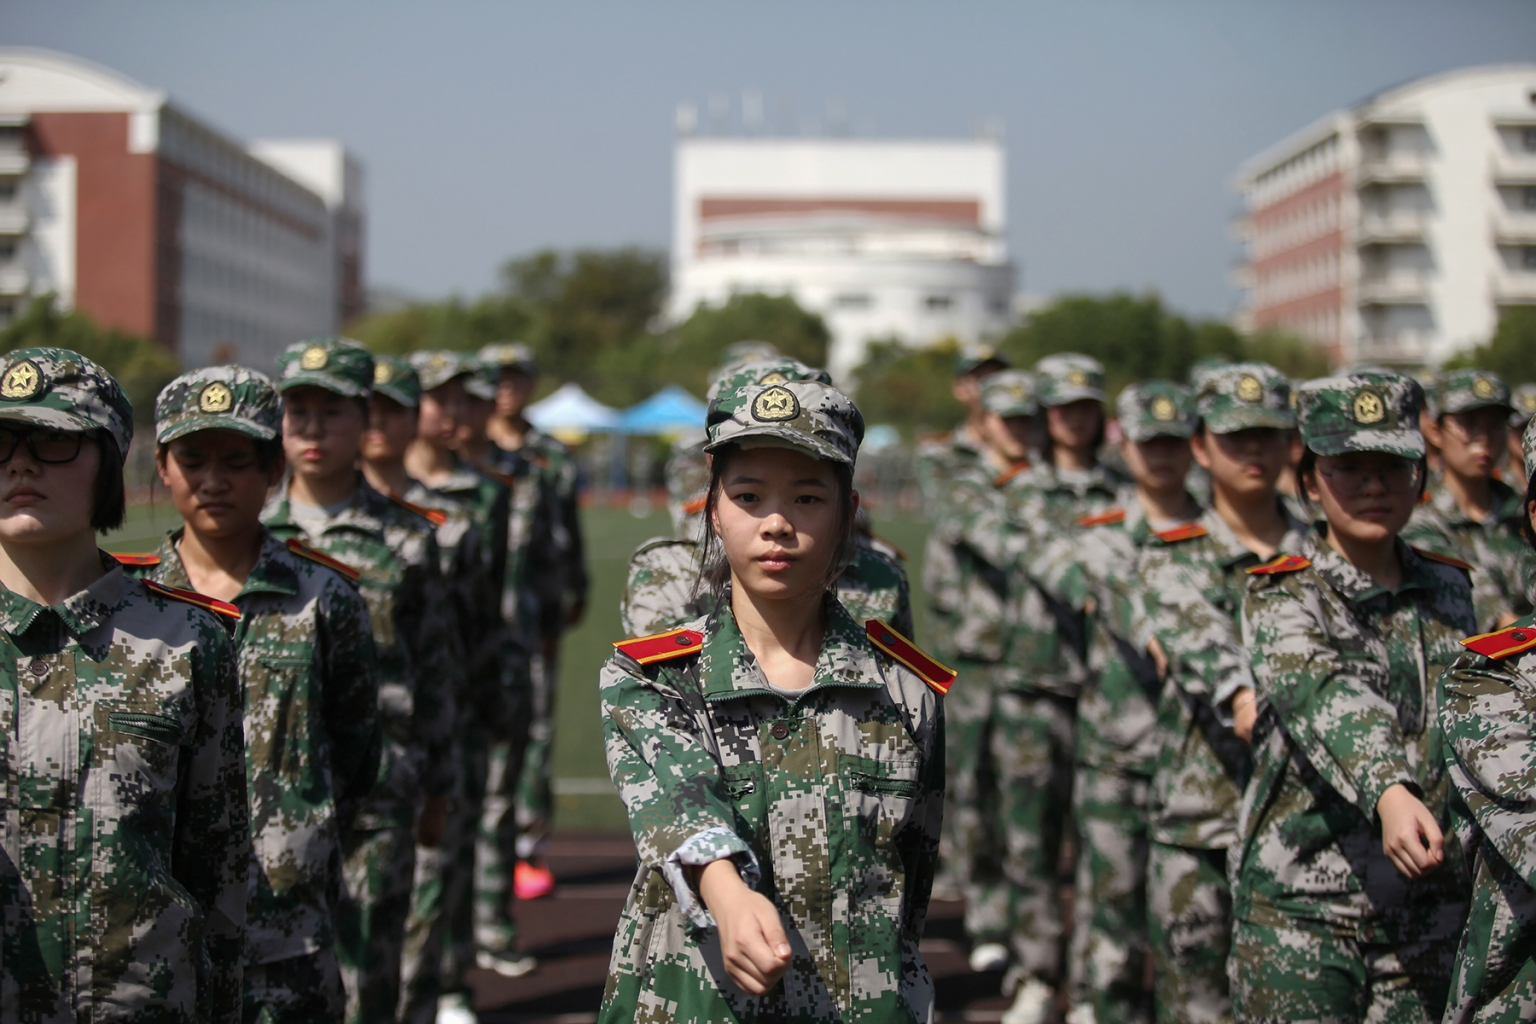 University freshmen take part in a military education and drill session at the beginning of the new semester in Yangzhou in China's eastern Jiangsu province on Sept. 4. STR/AFP/Getty Images